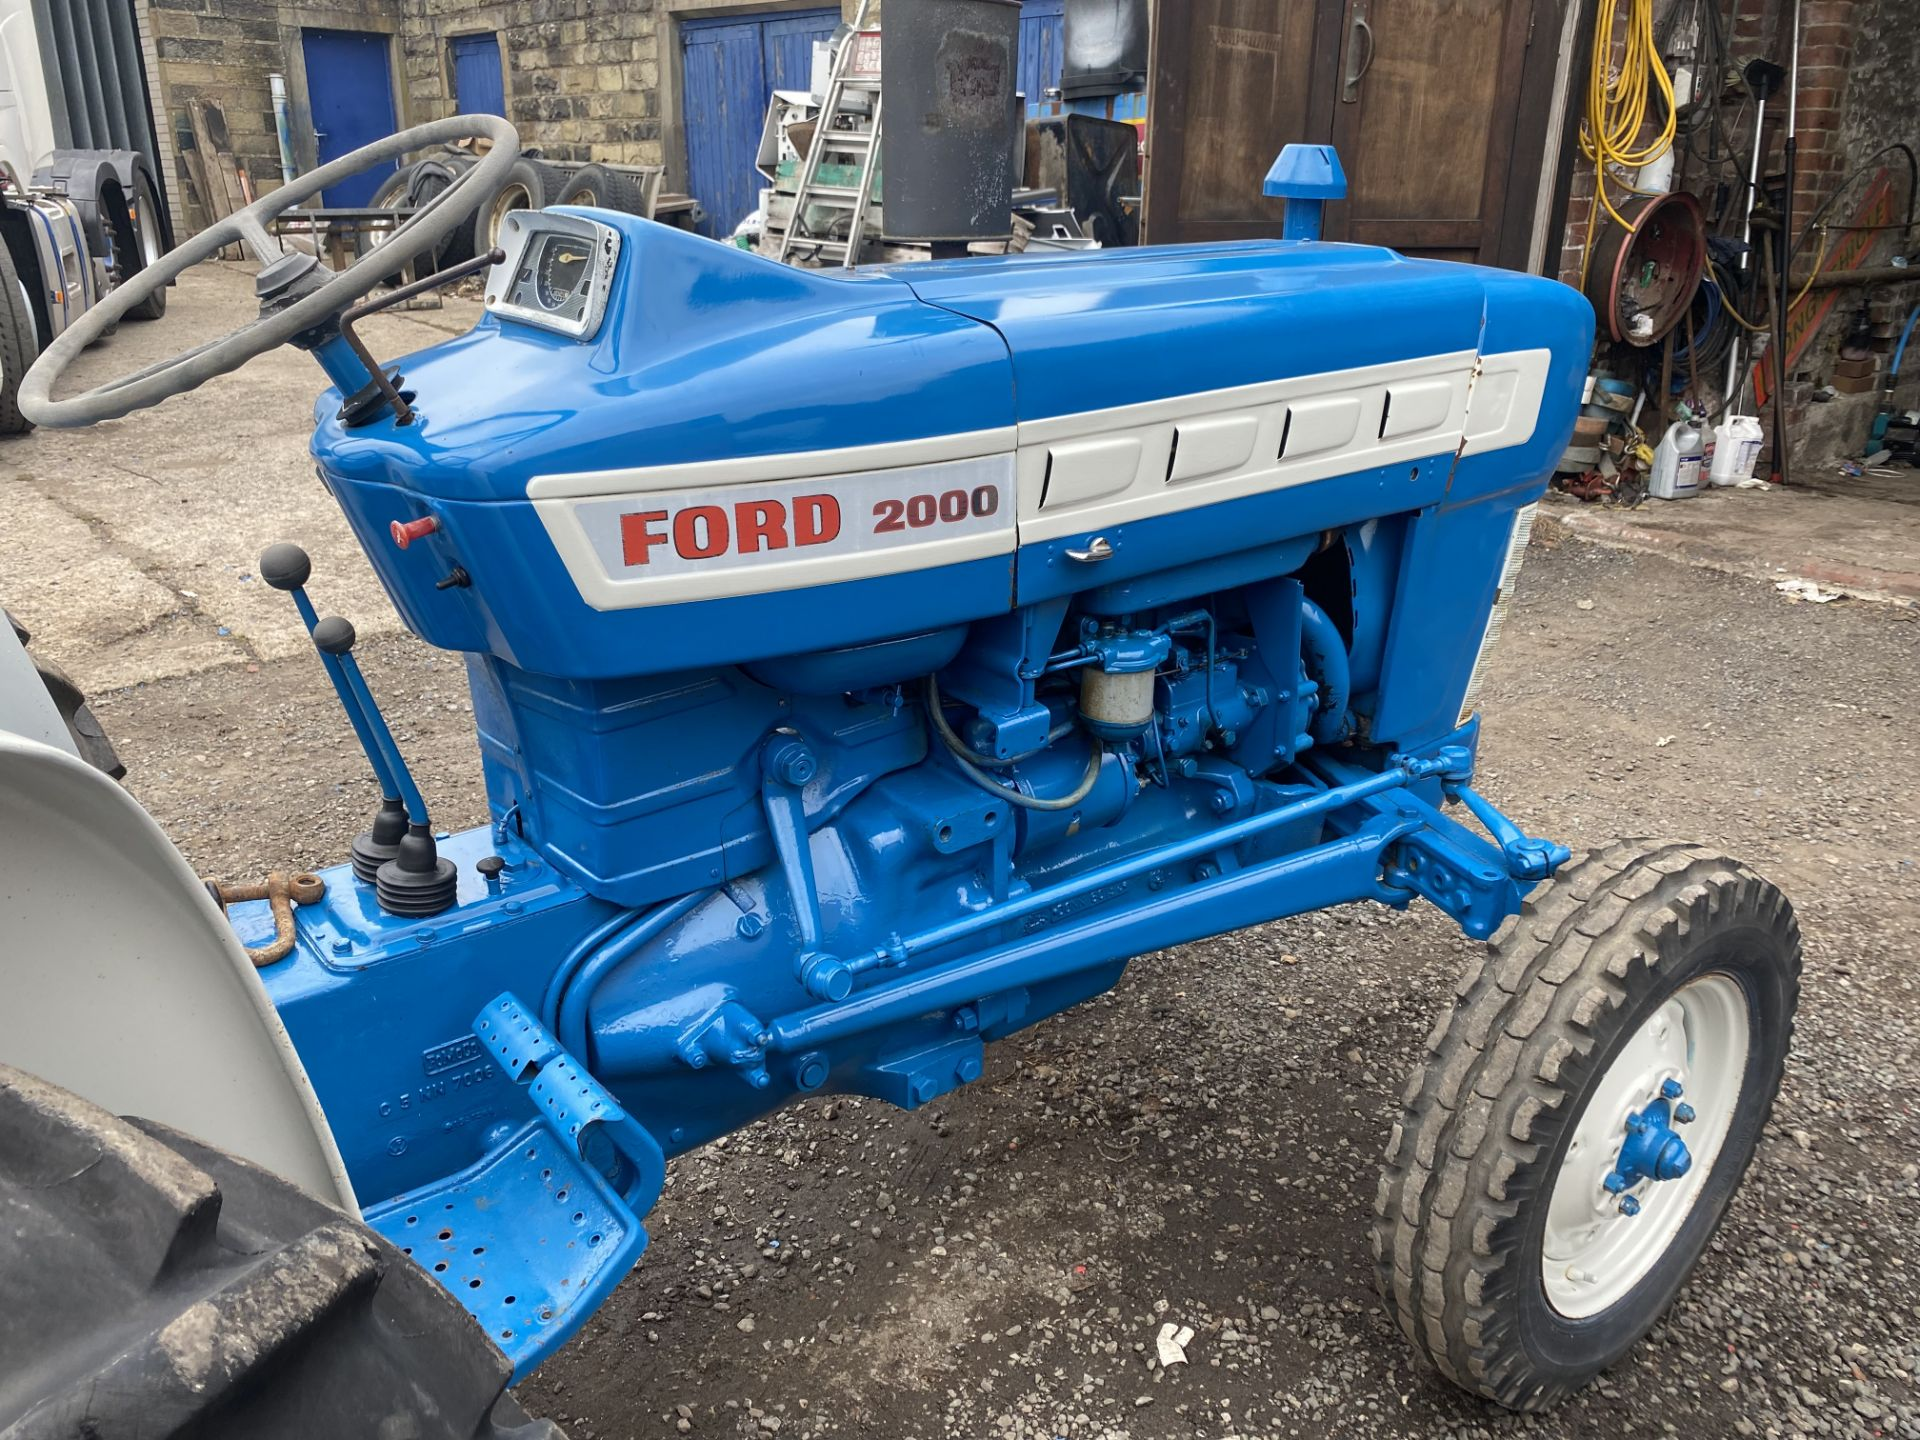 Ford 2000 Agricultural Tractor, vendors comments – nice original condition, clutch is stuck on - Image 9 of 9